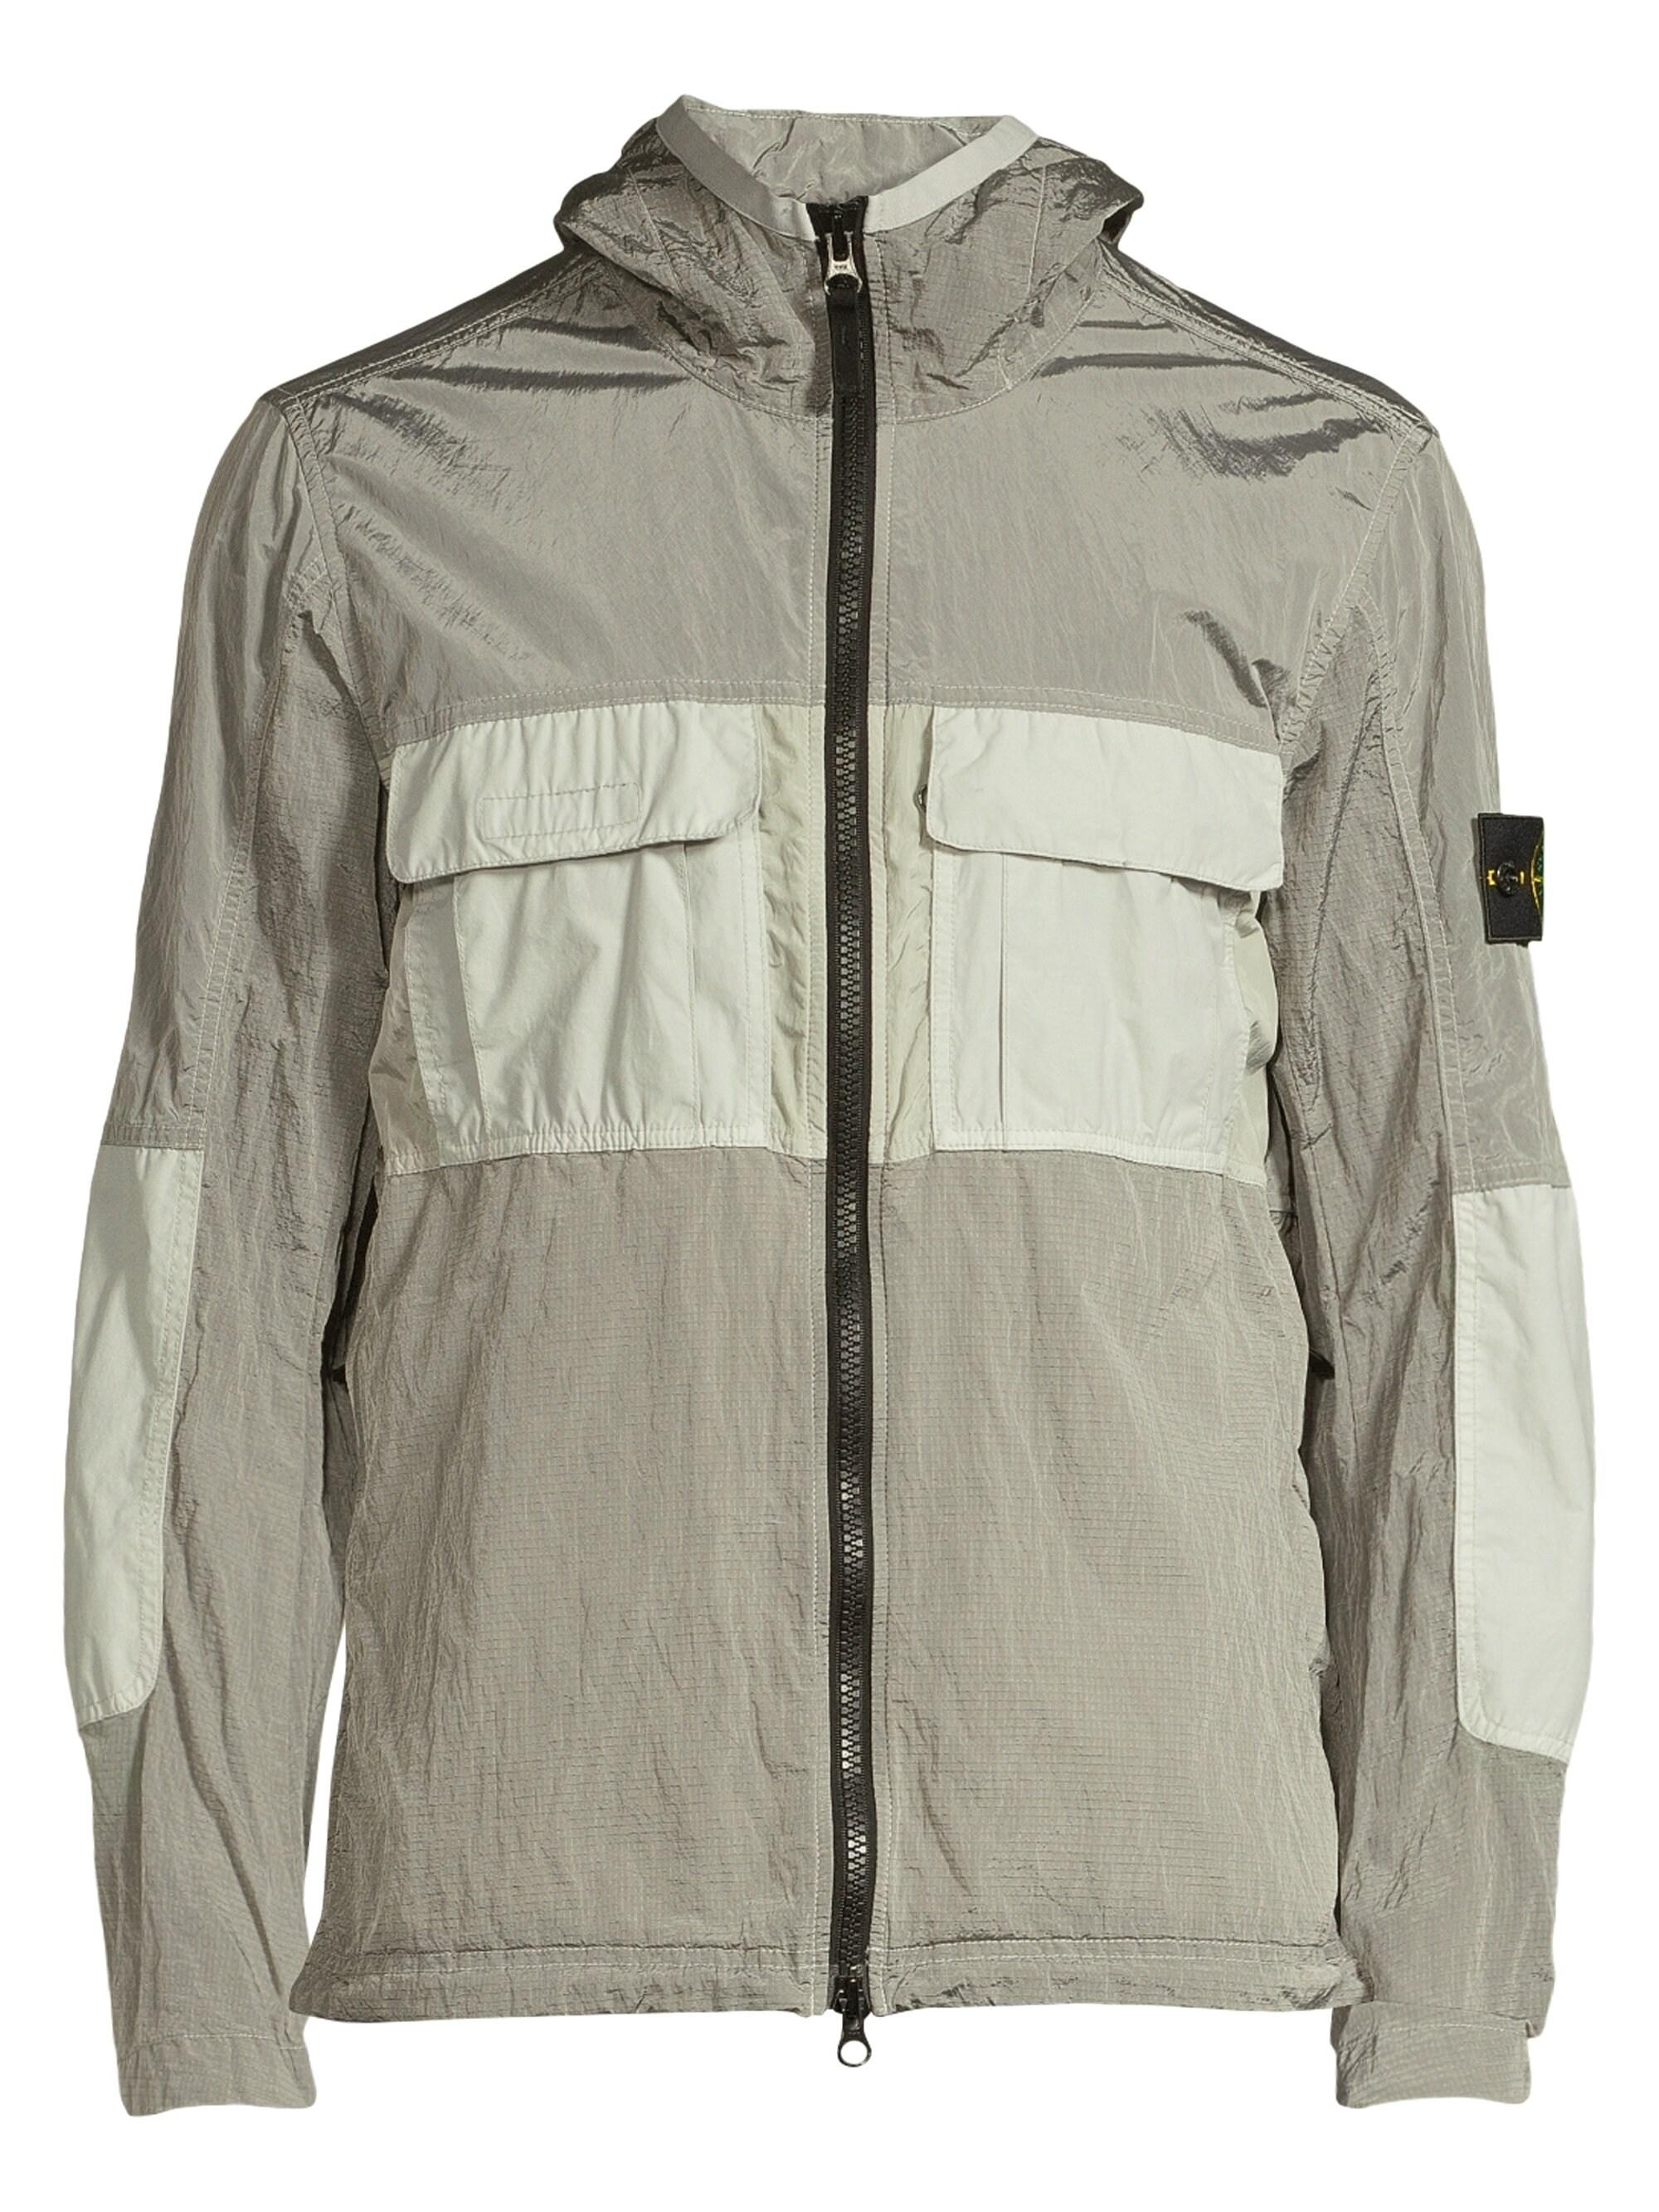 7f83fba32 Stone Island Shiny Metal Track Jacket in Gray for Men - Lyst